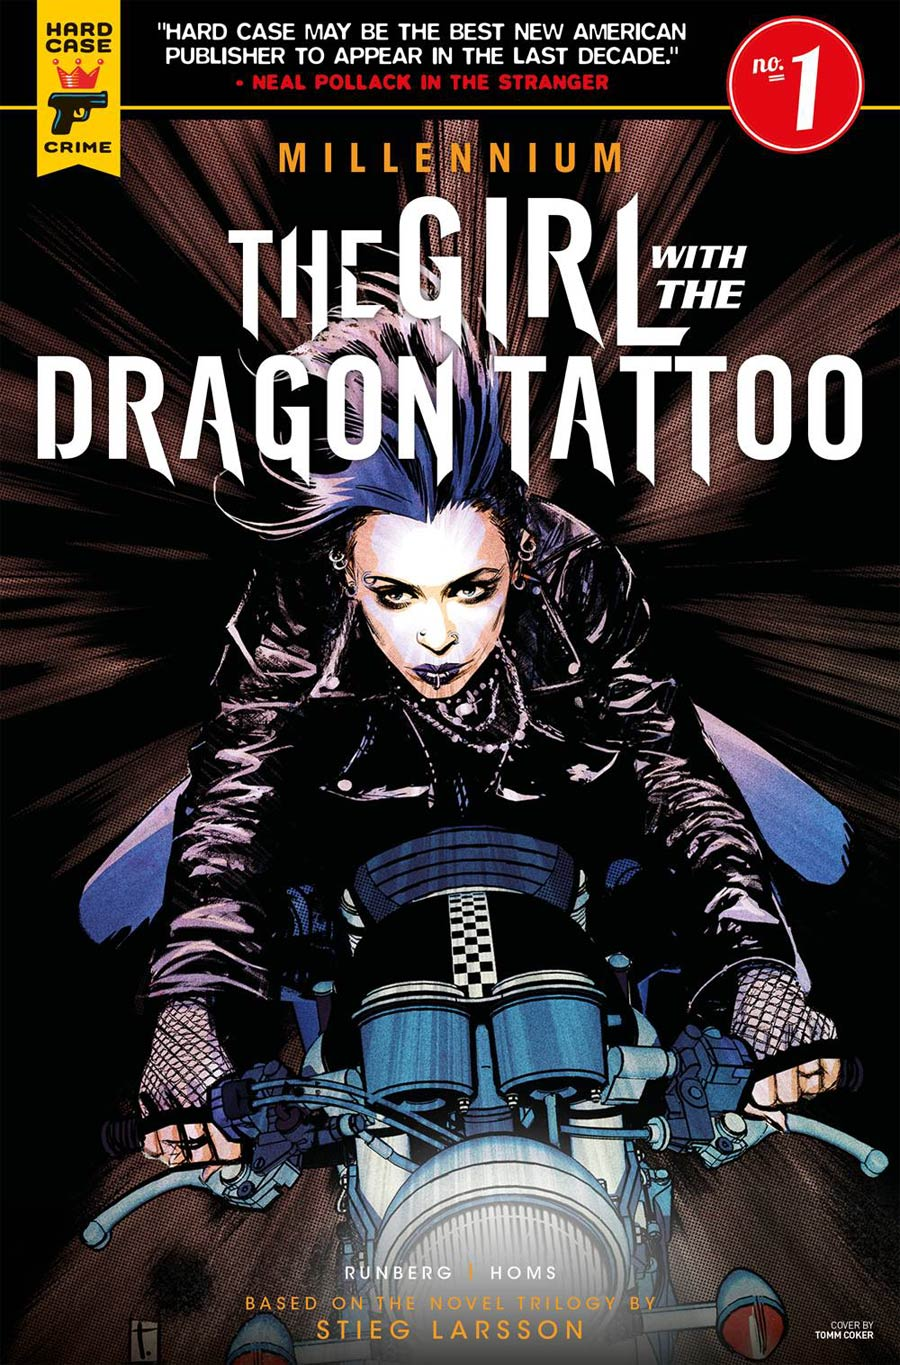 Hard Case Crime Millennium Girl With The Dragon Tattoo #1 Cover B Variant Tomm Coker Cover